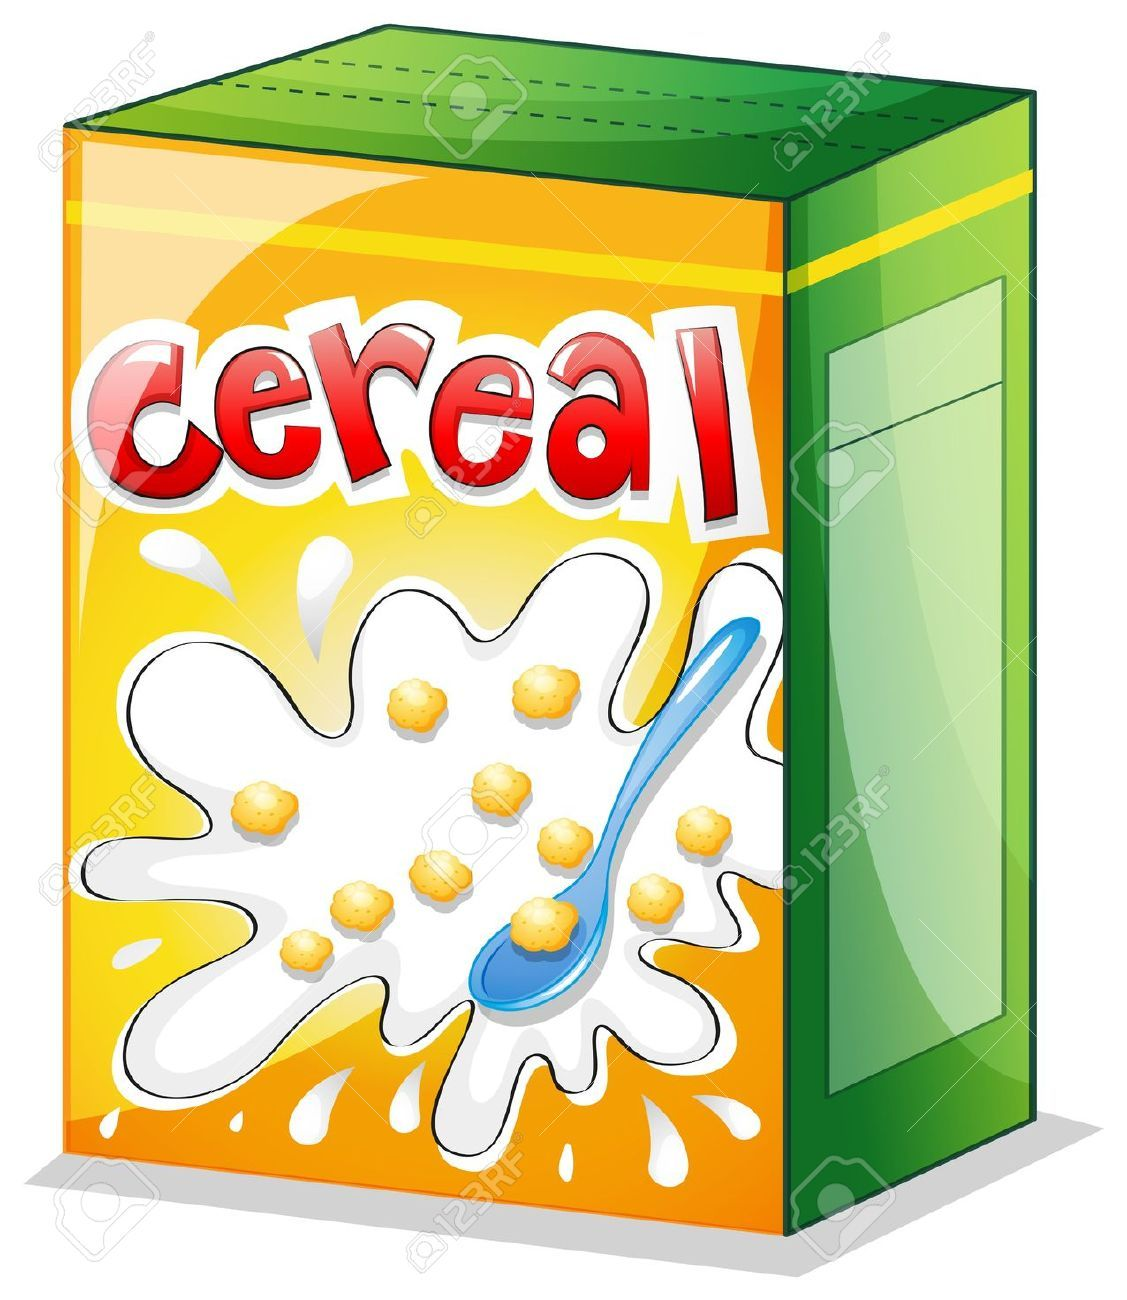 Box of cereal clipart 3 » Clipart Portal.